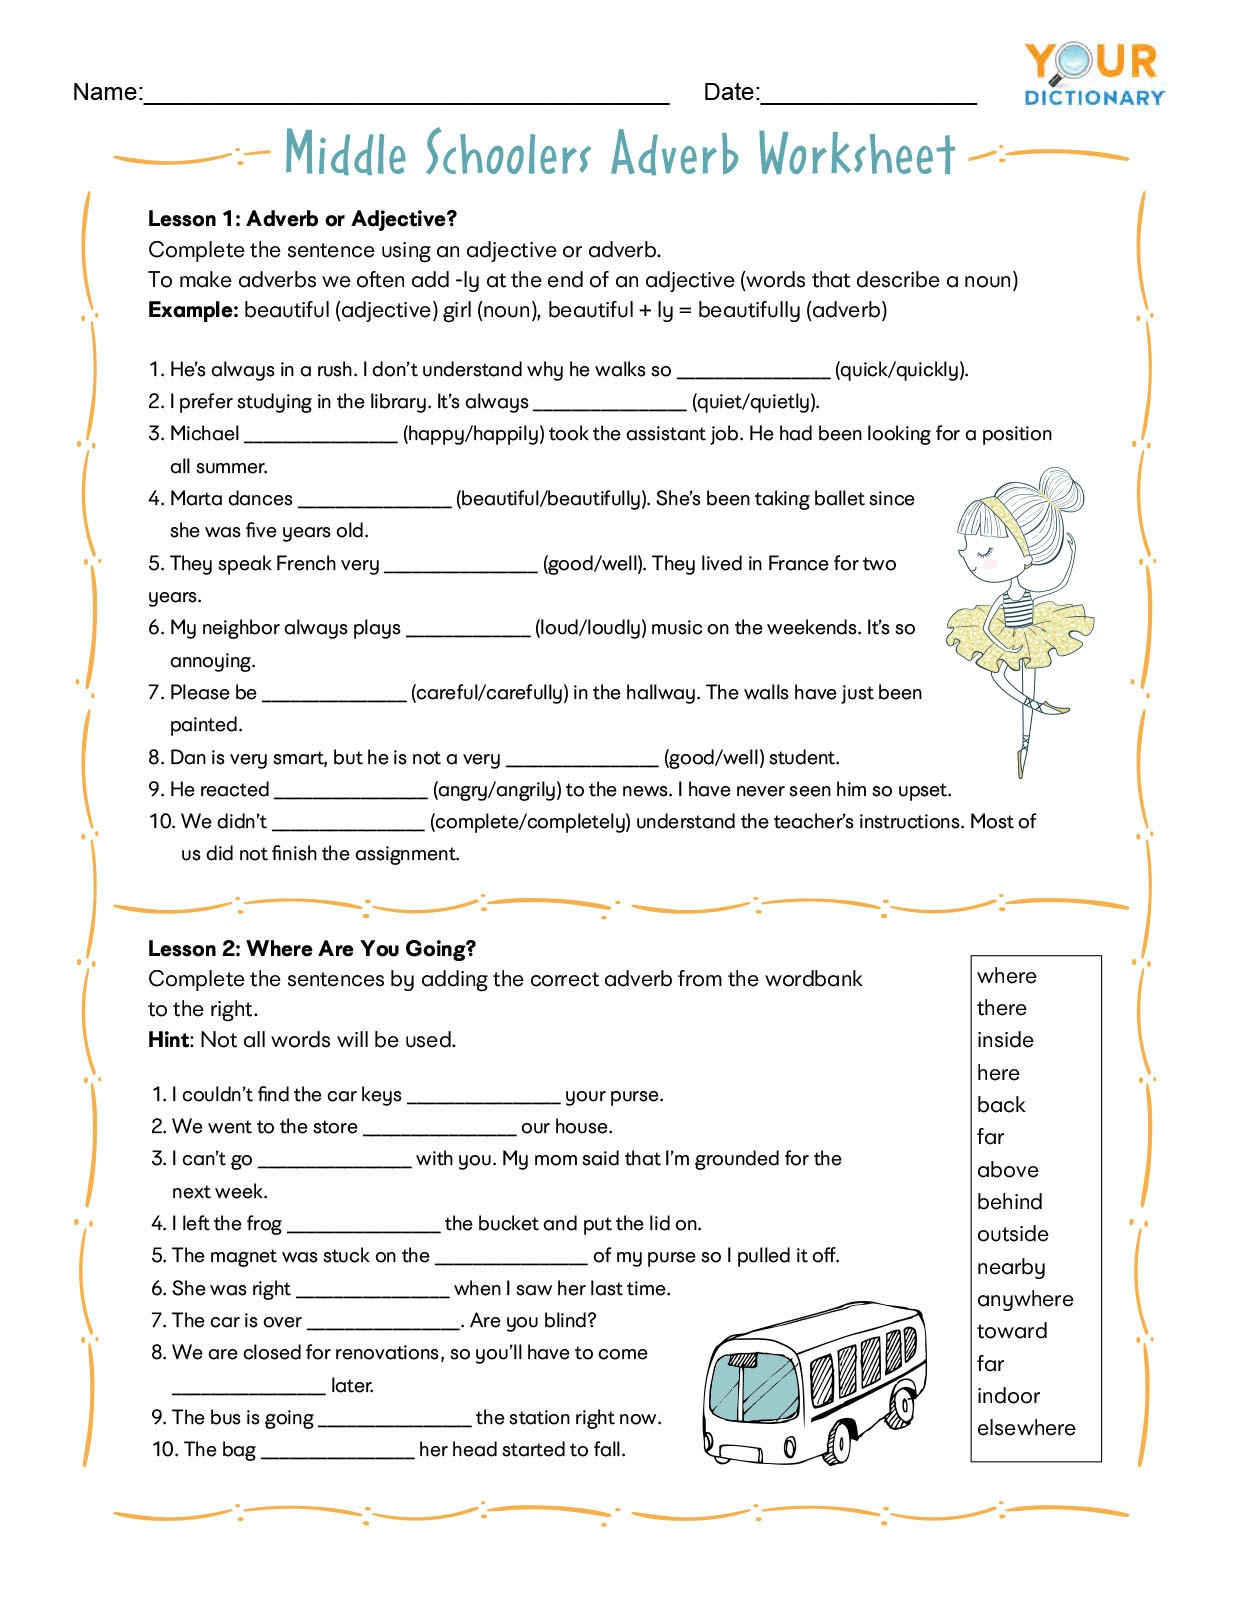 Grammar Worksheets for Middle School Adverb Worksheets for Elementary and Middle School